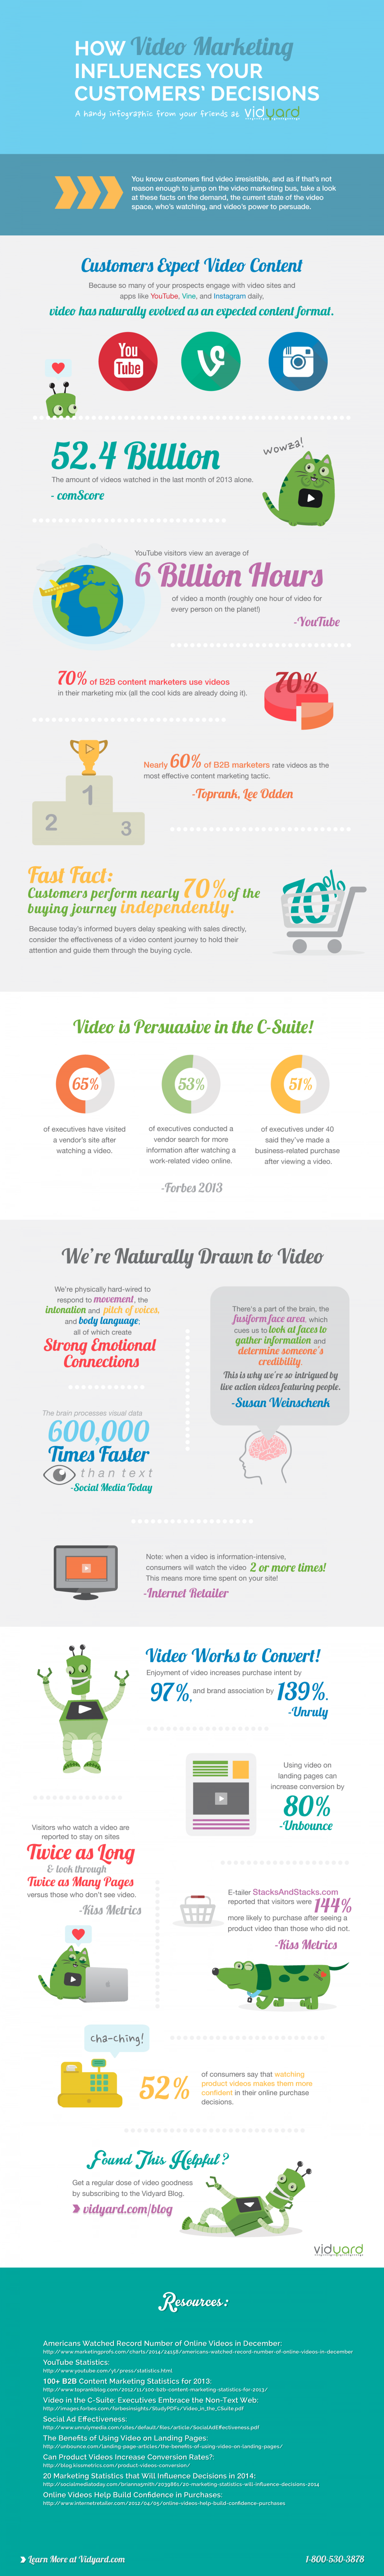 How Video Marketing Influences Your Customers' Decisions Infographic